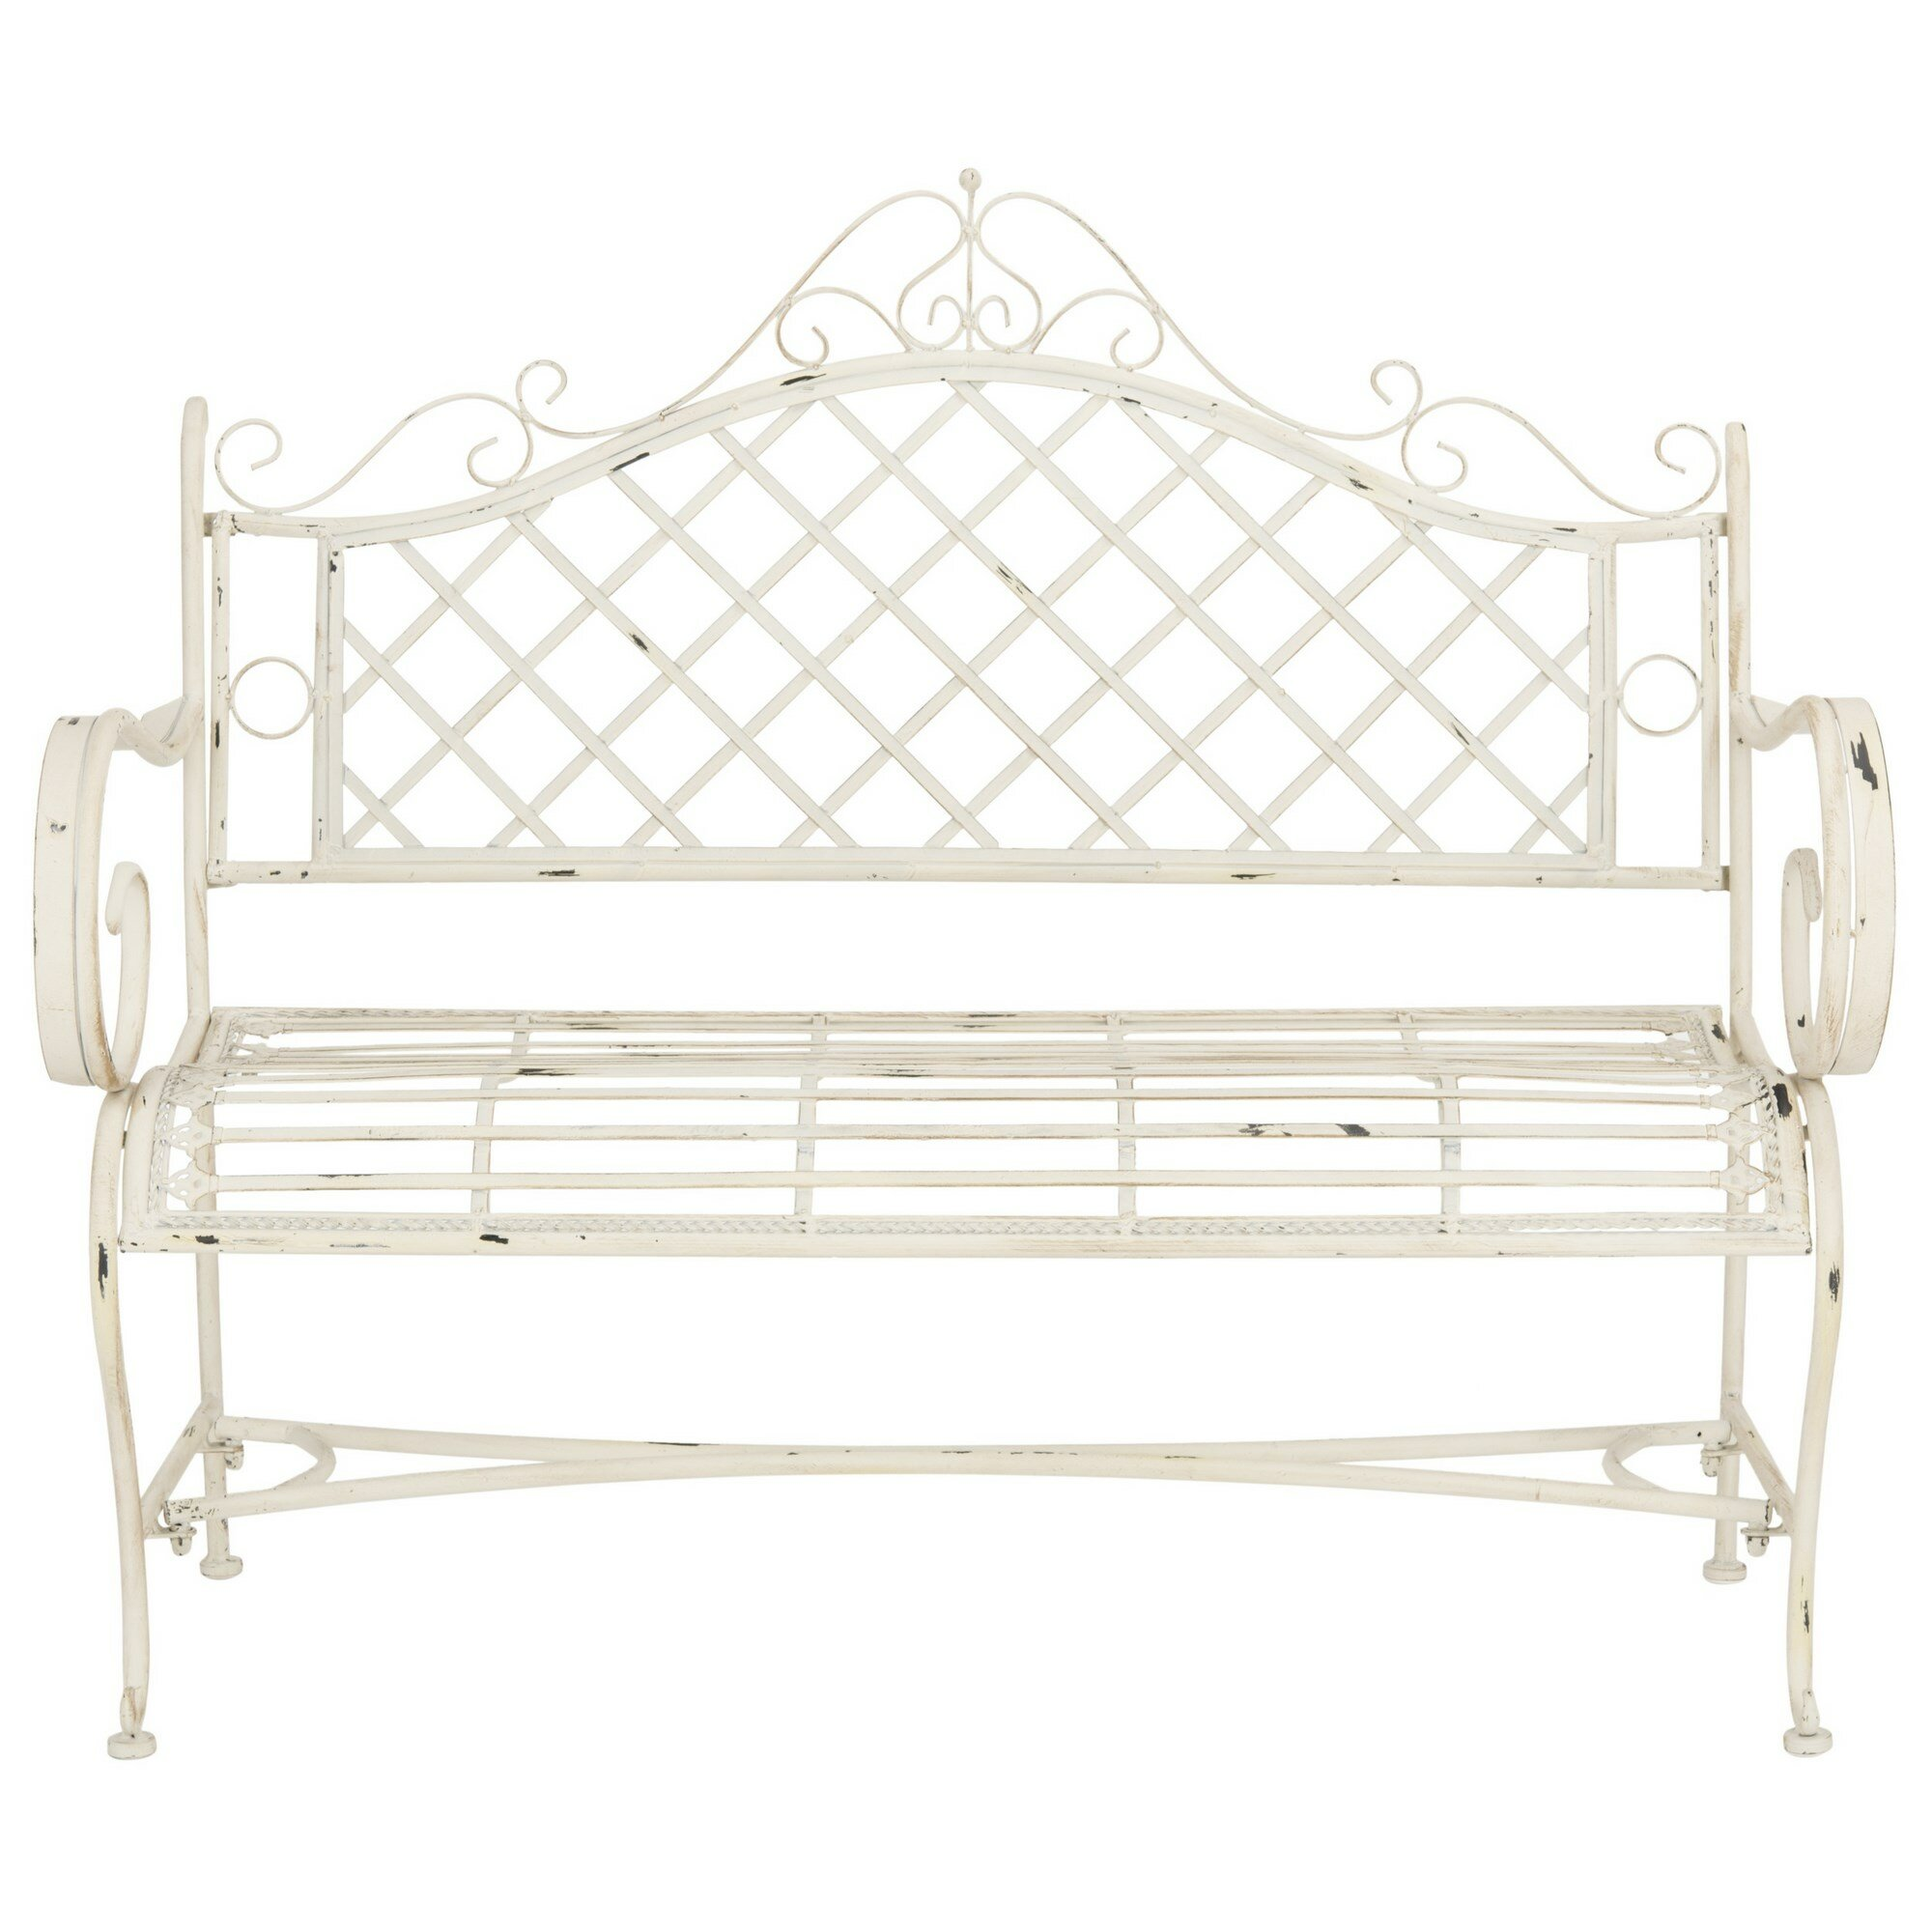 iron wrought front porch seating benches metal park bench wrirscbeviwh